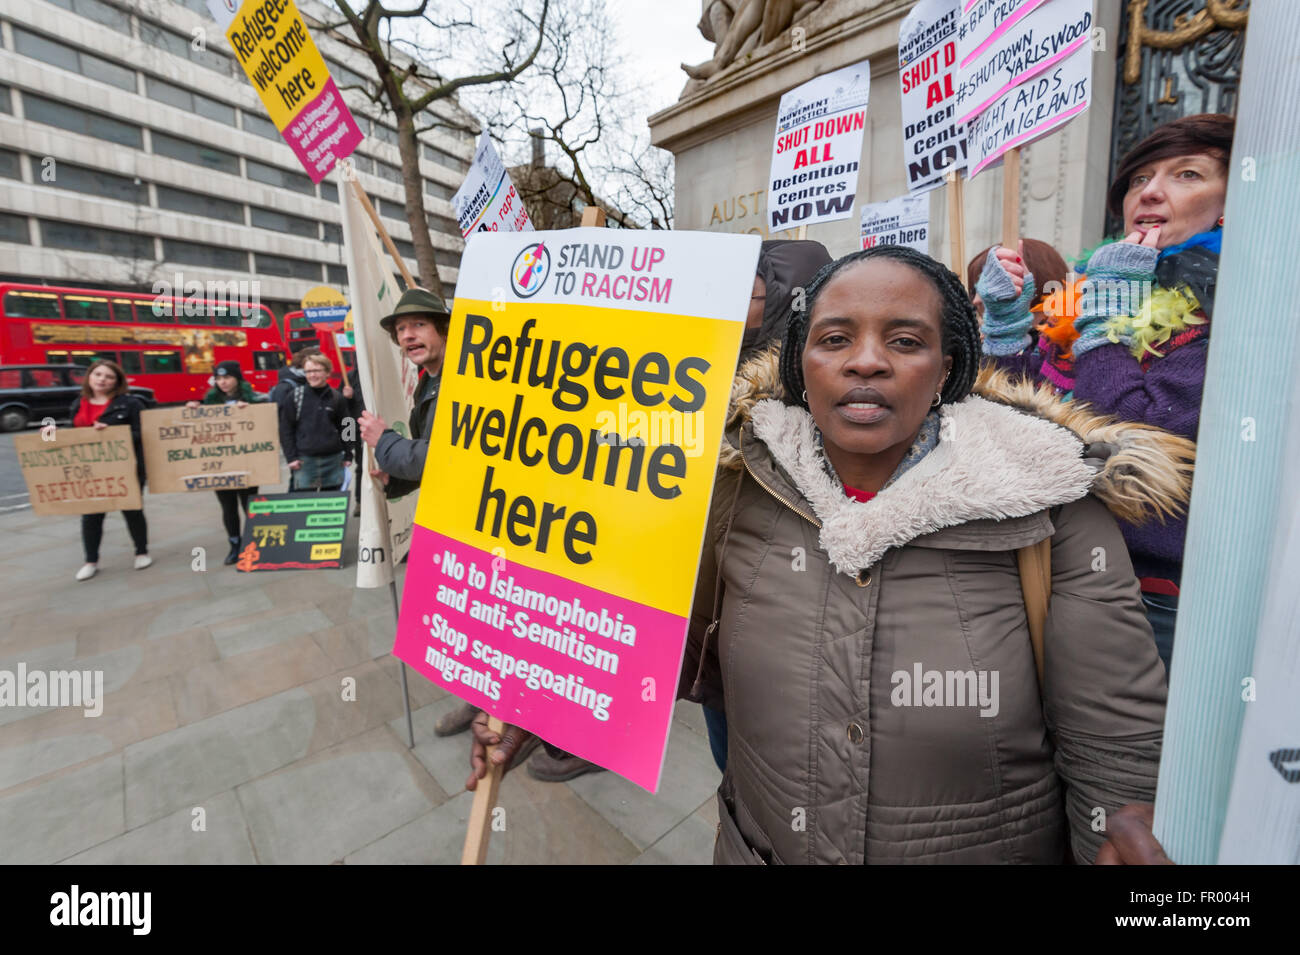 London, UK. 19th March, 2016. Australian human rights protesters rallied at embassies around the world, including - Stock Image